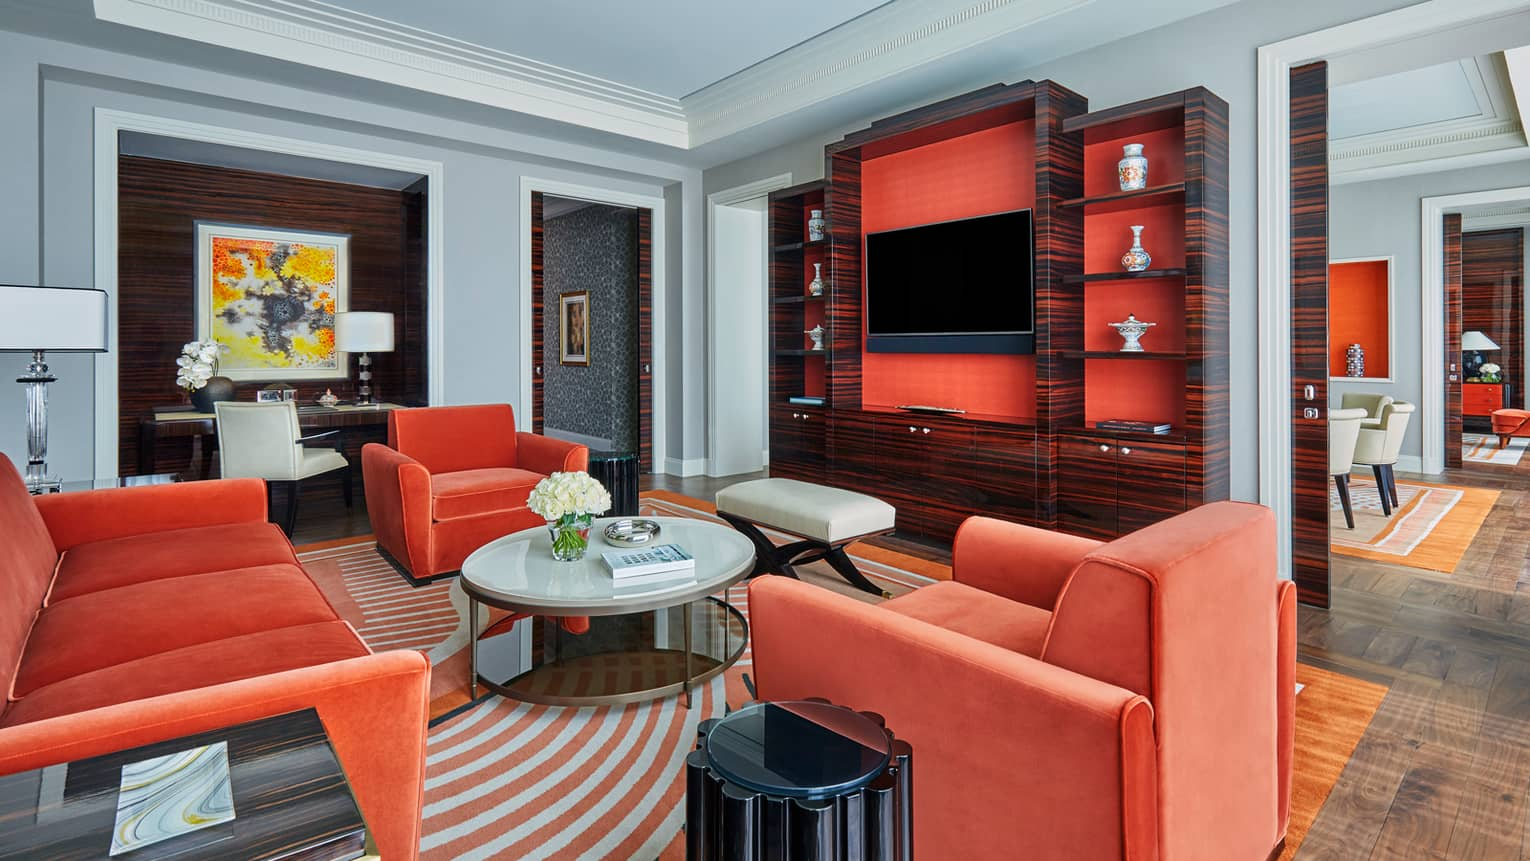 State Suite with warm orange velvet sofa and chairs, round coffee table, TV cabinet